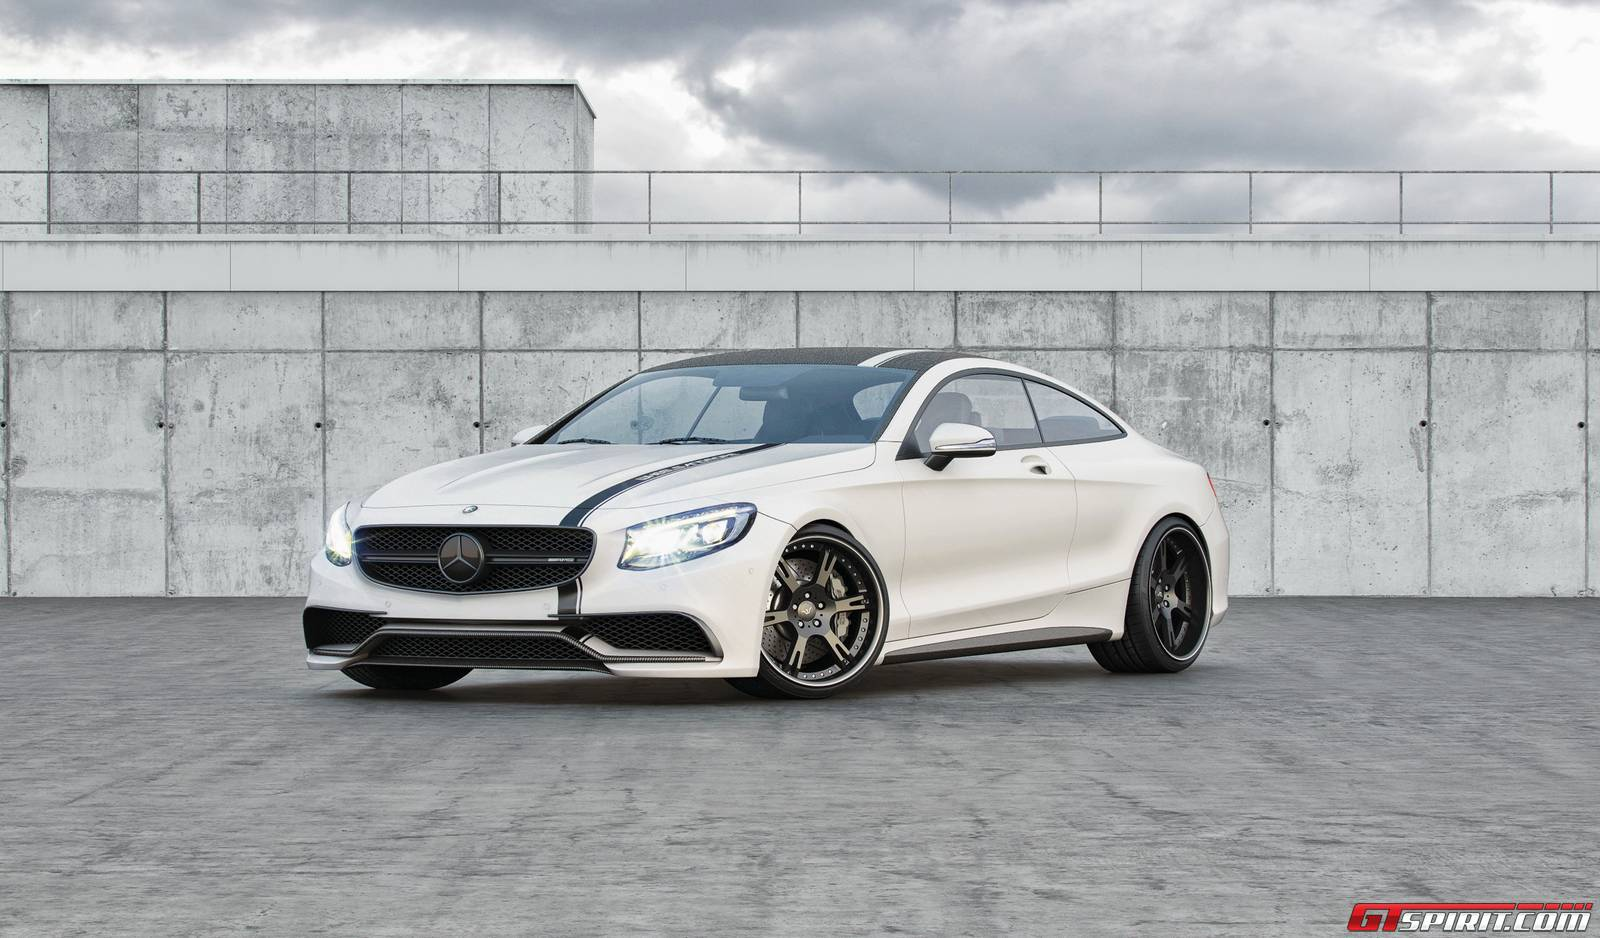 701hp mercedes benz s63 amg coupe by renntech gtspirit for Mercedes benz amg s63